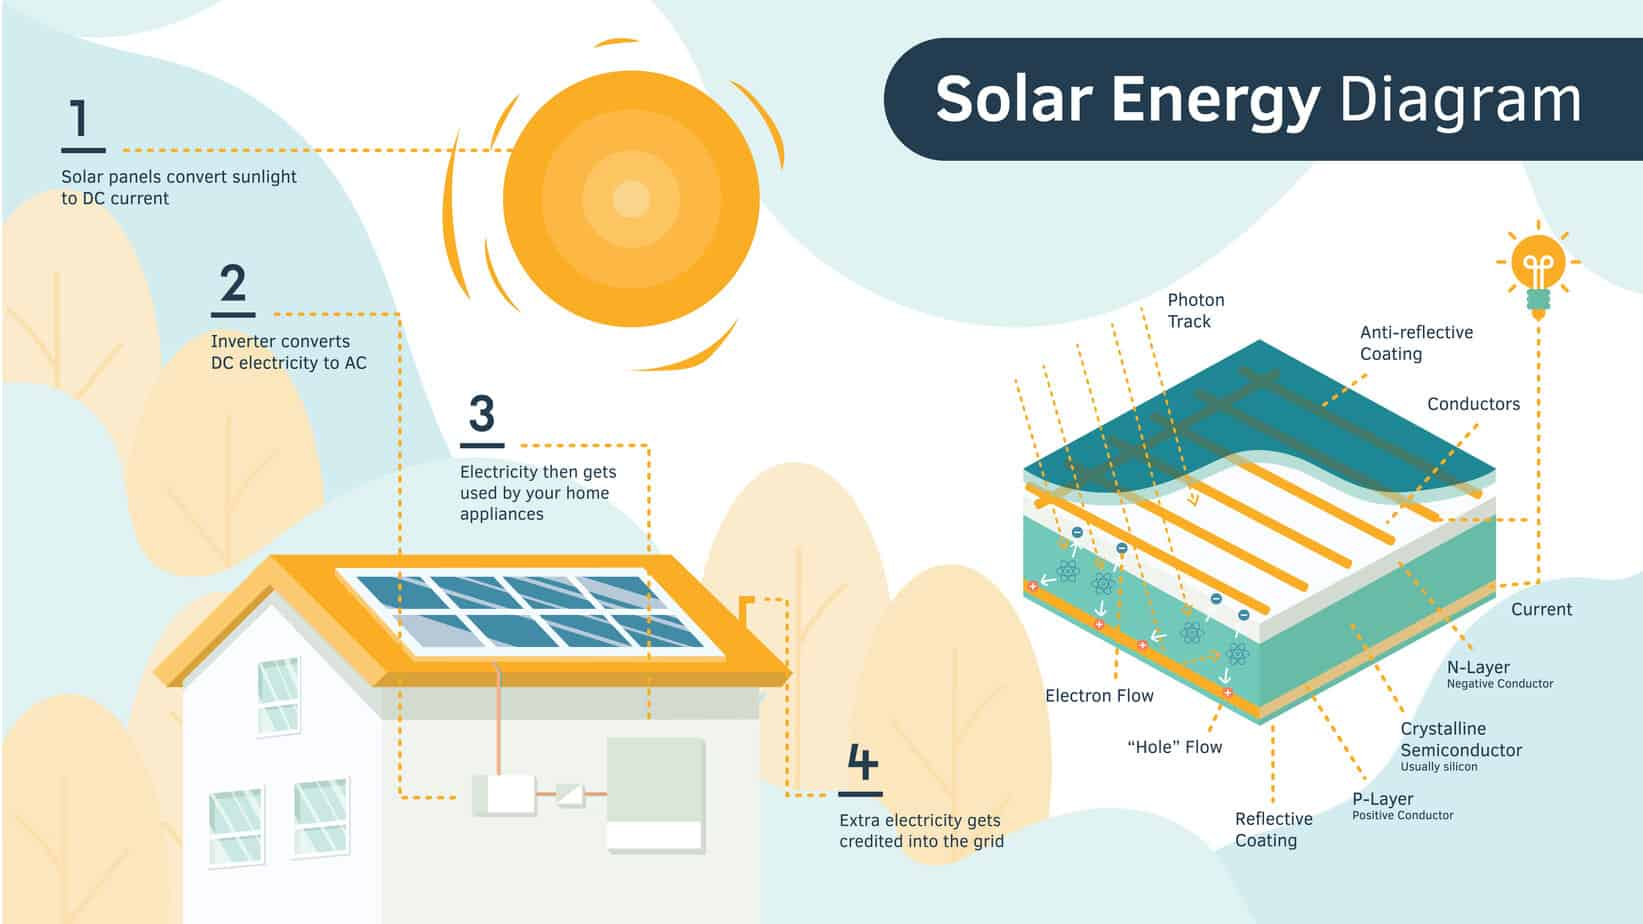 solar power plant flow diagram how do solar panels work  solar energy diagram the solar advantage  how do solar panels work  solar energy